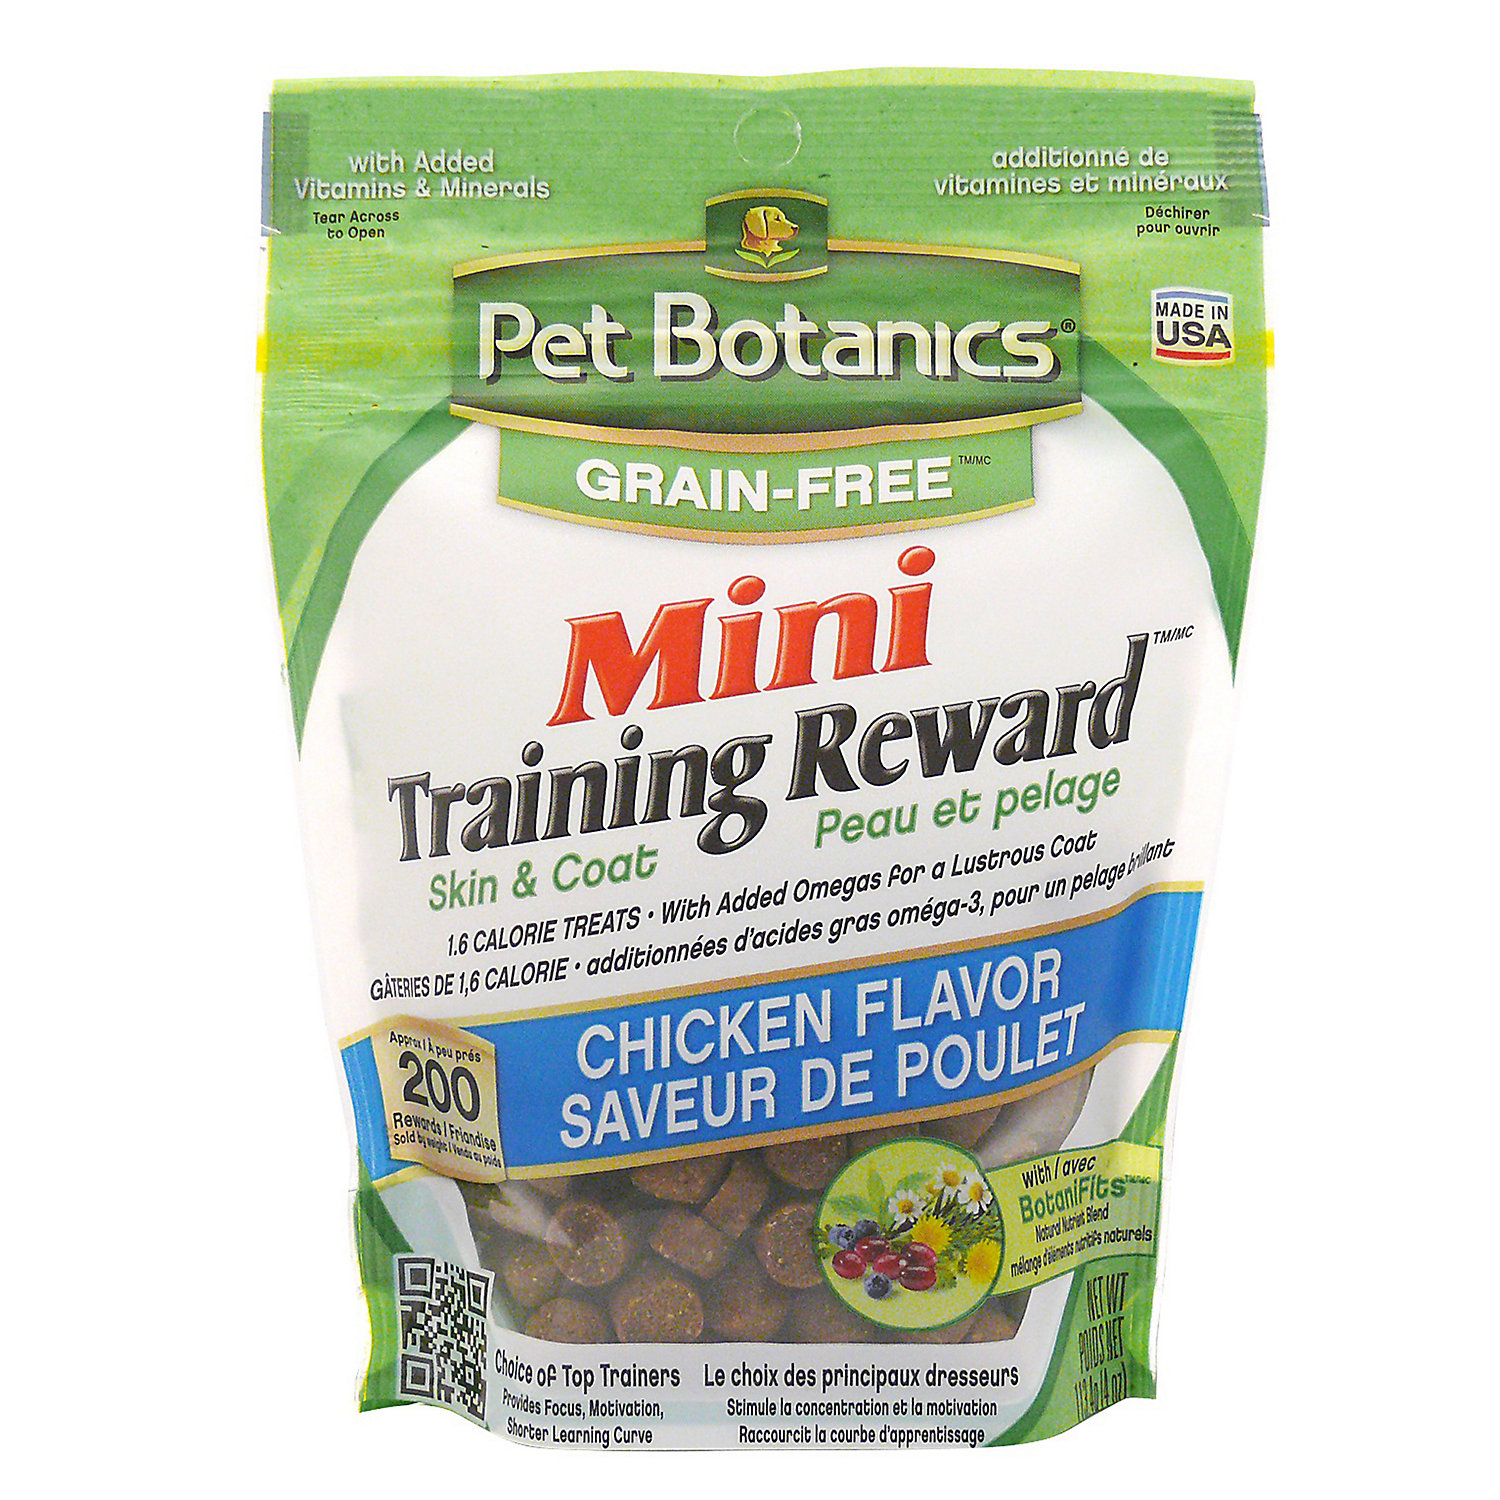 Image of Pet Botanics Grain Free Mini Training Reward Chicken Flavor Dog Treats